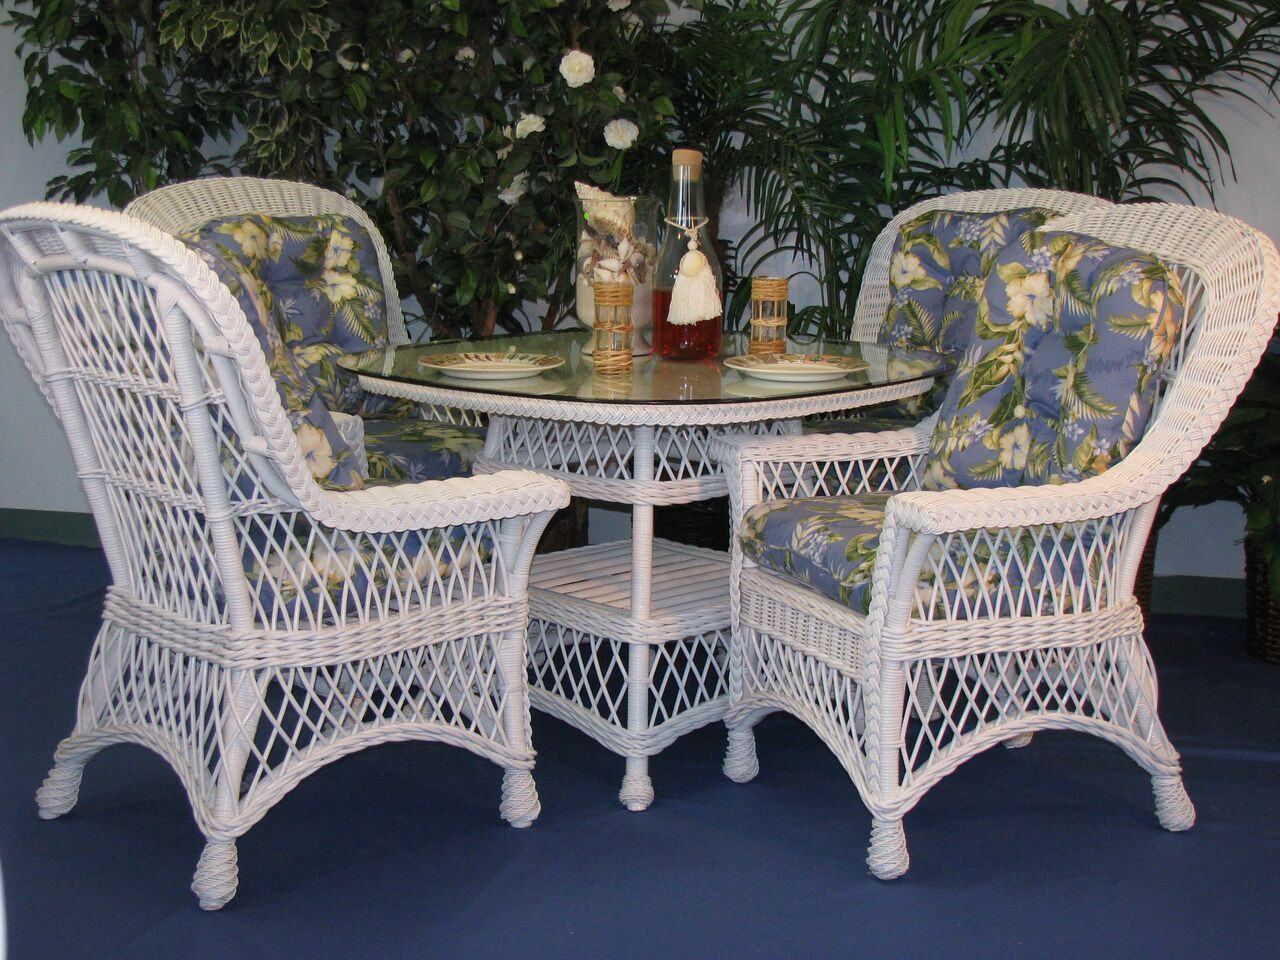 Spice Islands Spice Islands Bar Harbor Dining Table in White by Spice Islands - No Glass Top Dining Table - Rattan Imports